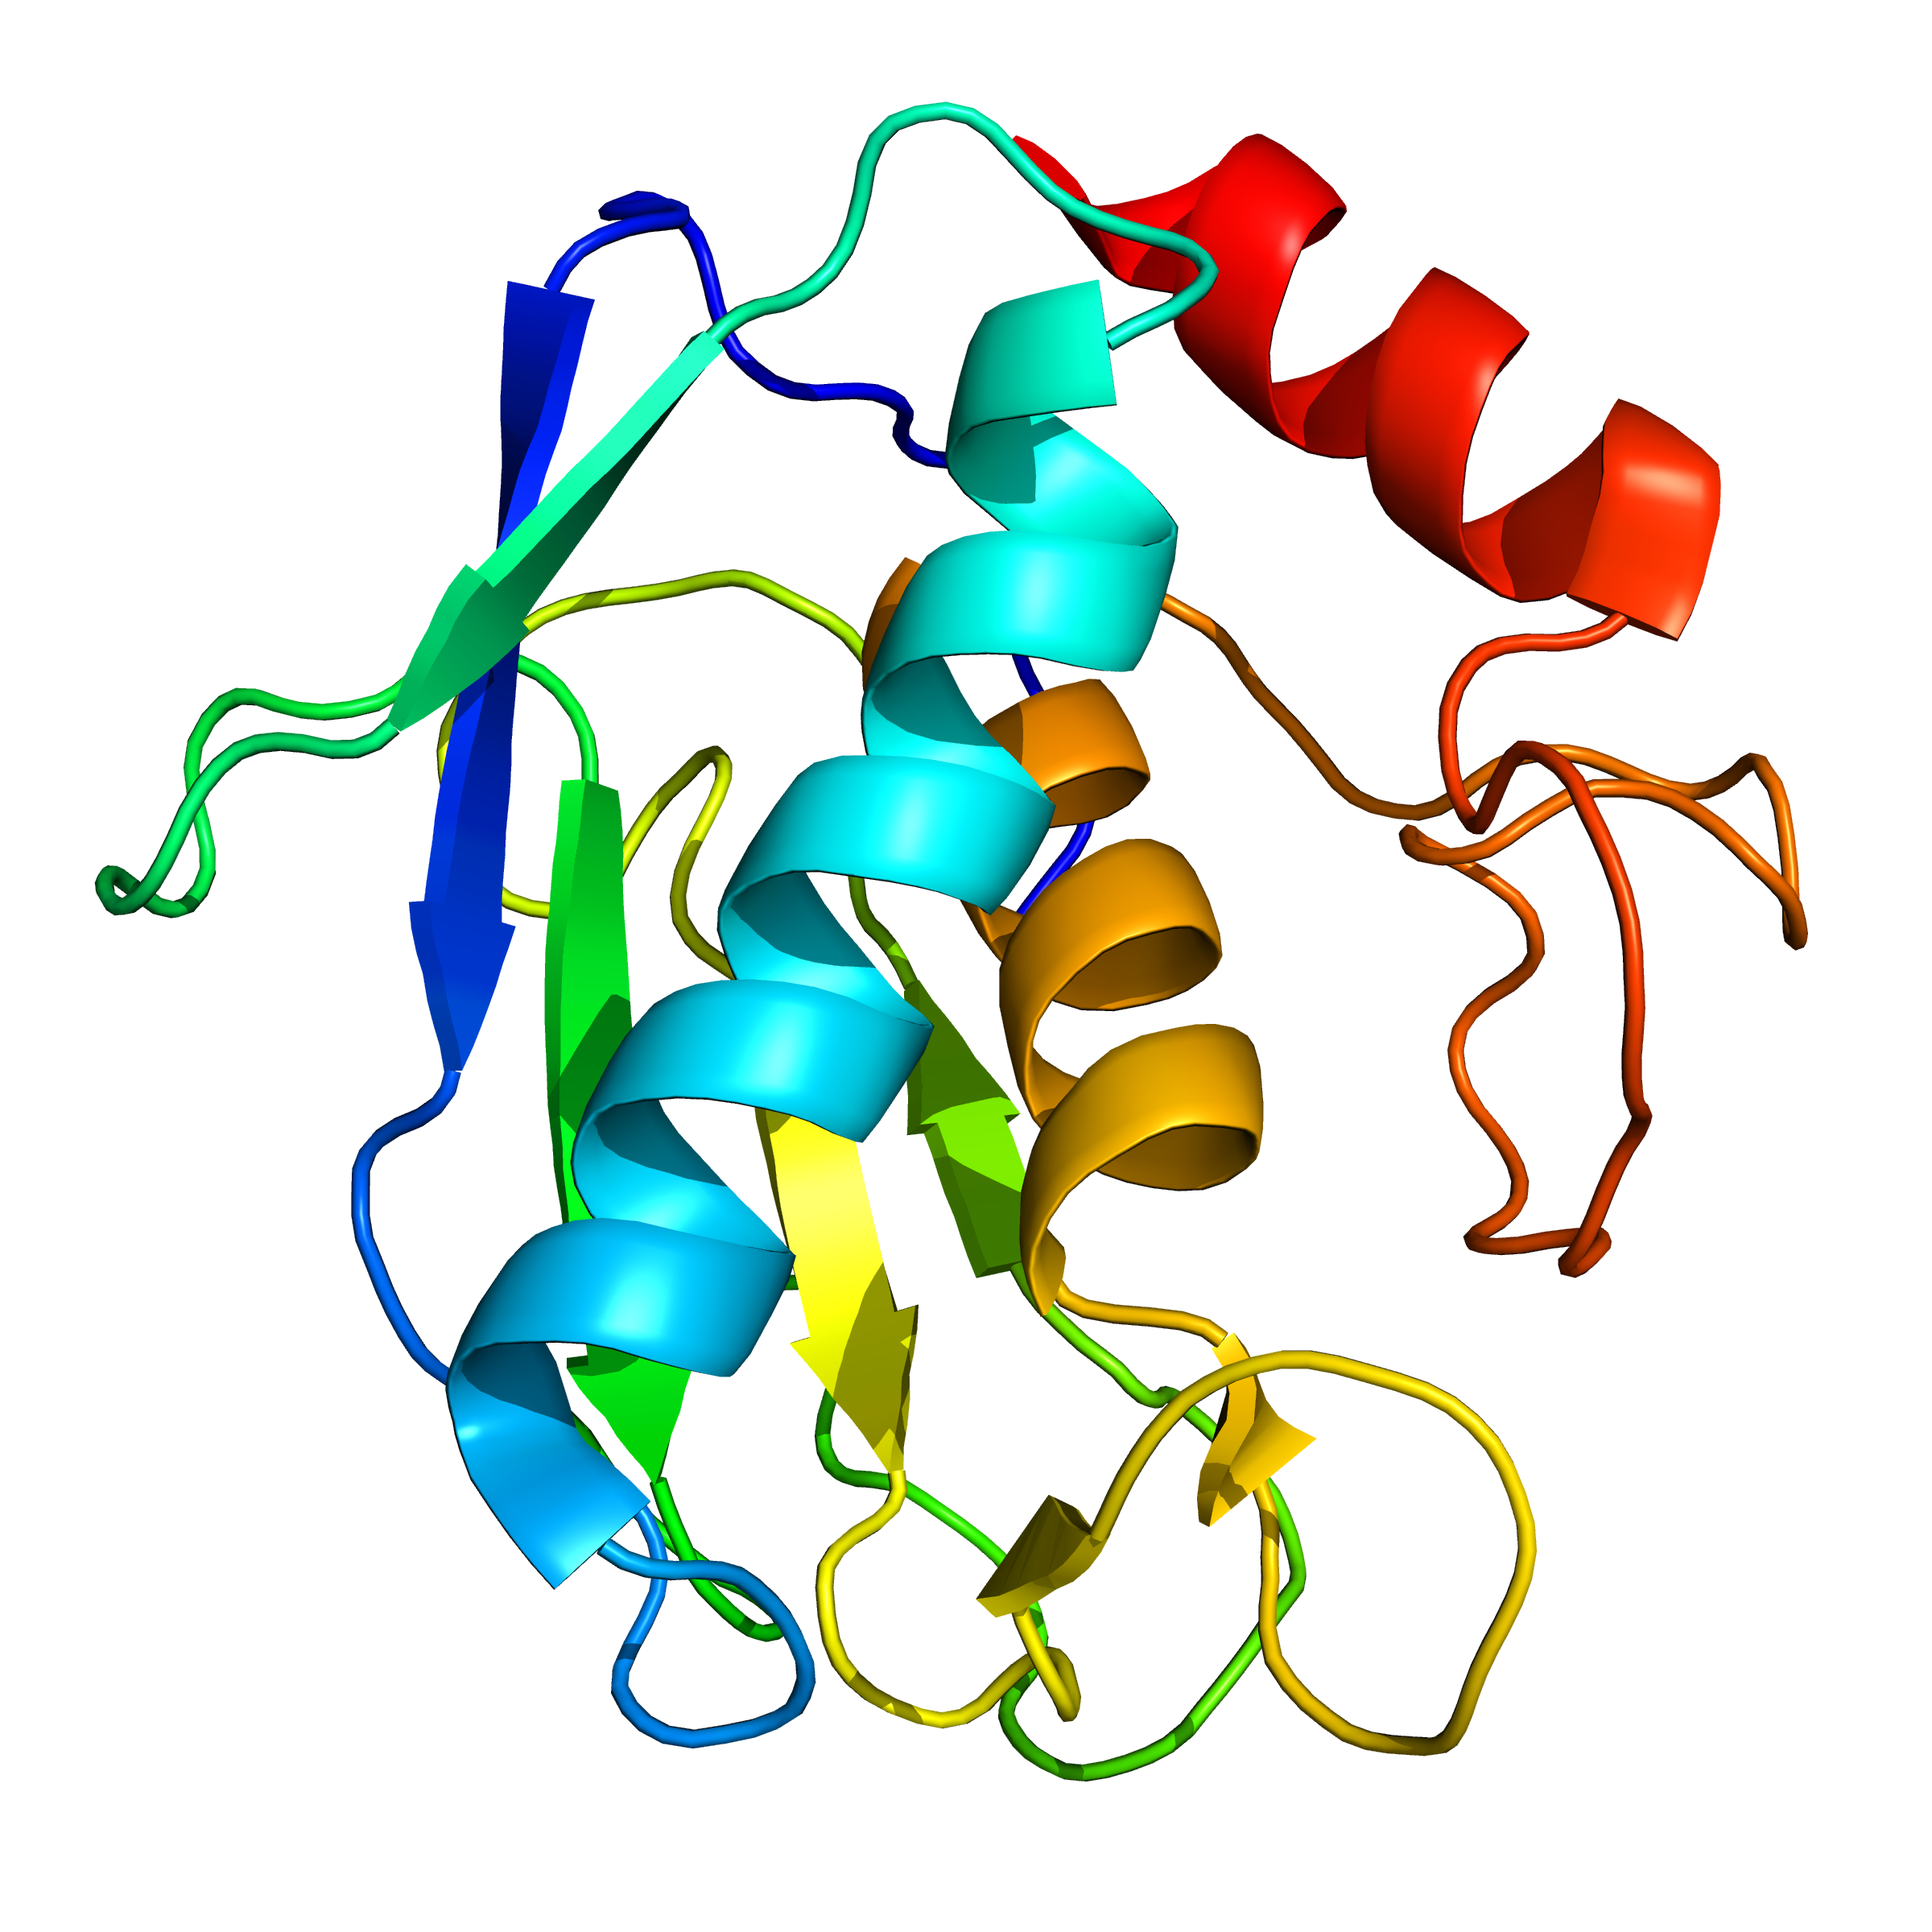 mmp9 | recombinant proteins offer